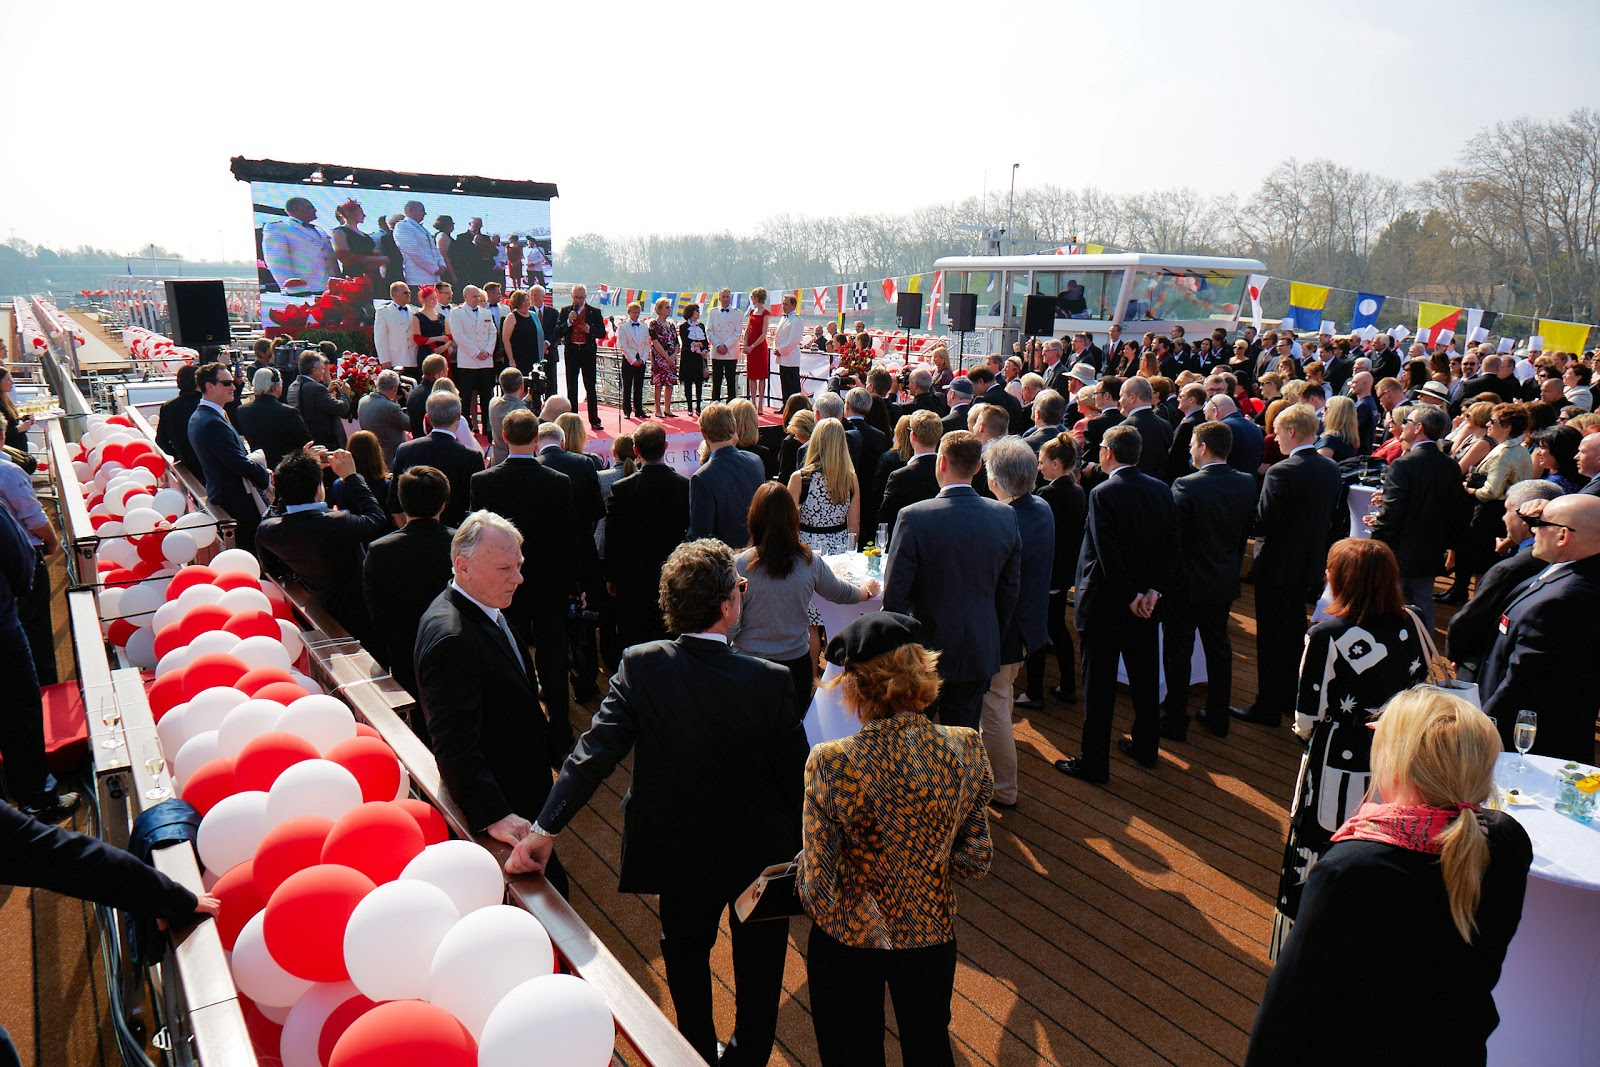 The view from the Sun Decks of the Viking Buri and the Viking Heimdal at the christening event in Avignon. Photo: Courtesy of Viking Cruises. Unauthorized use is prohibited.